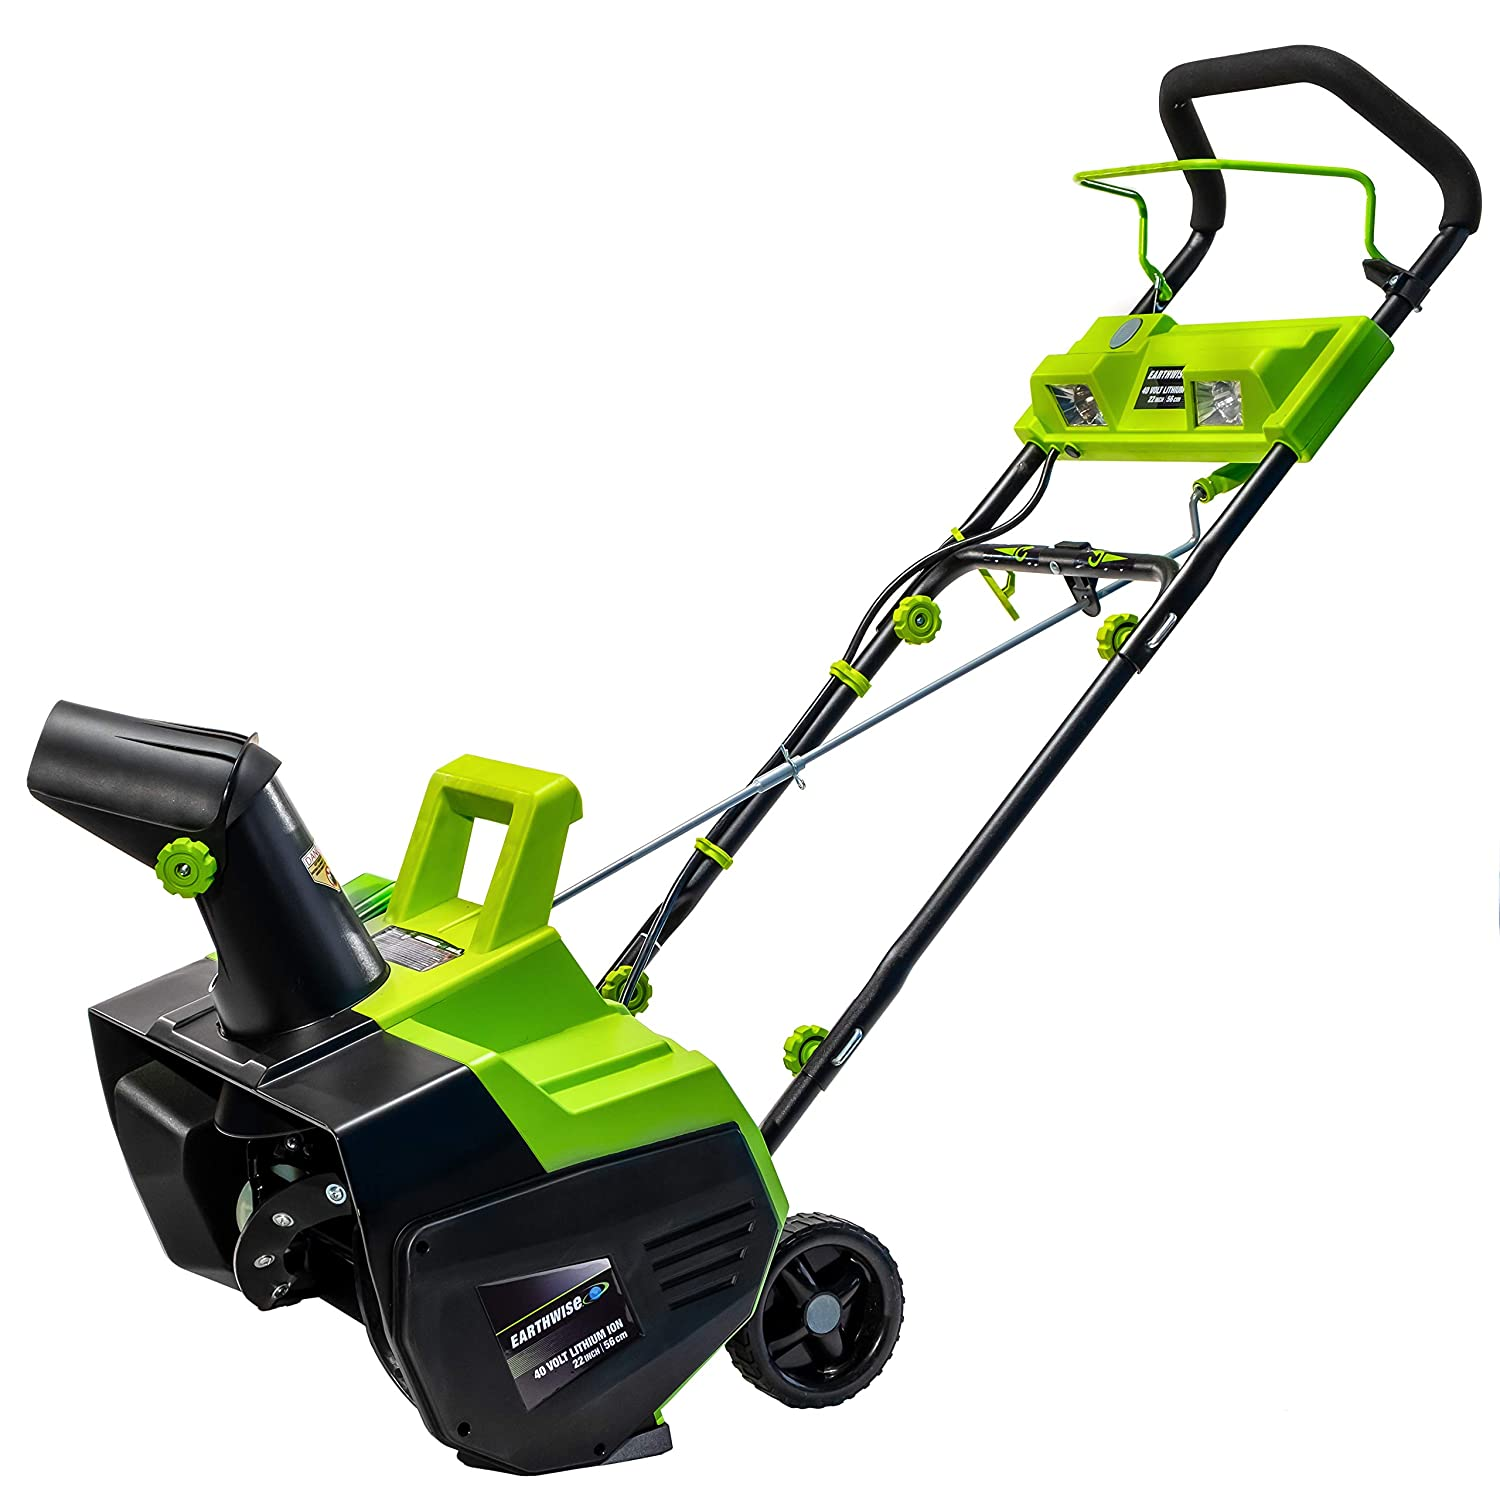 Earthwise SN74022 22-Inch 40-Volt Cordless Snow Thrower